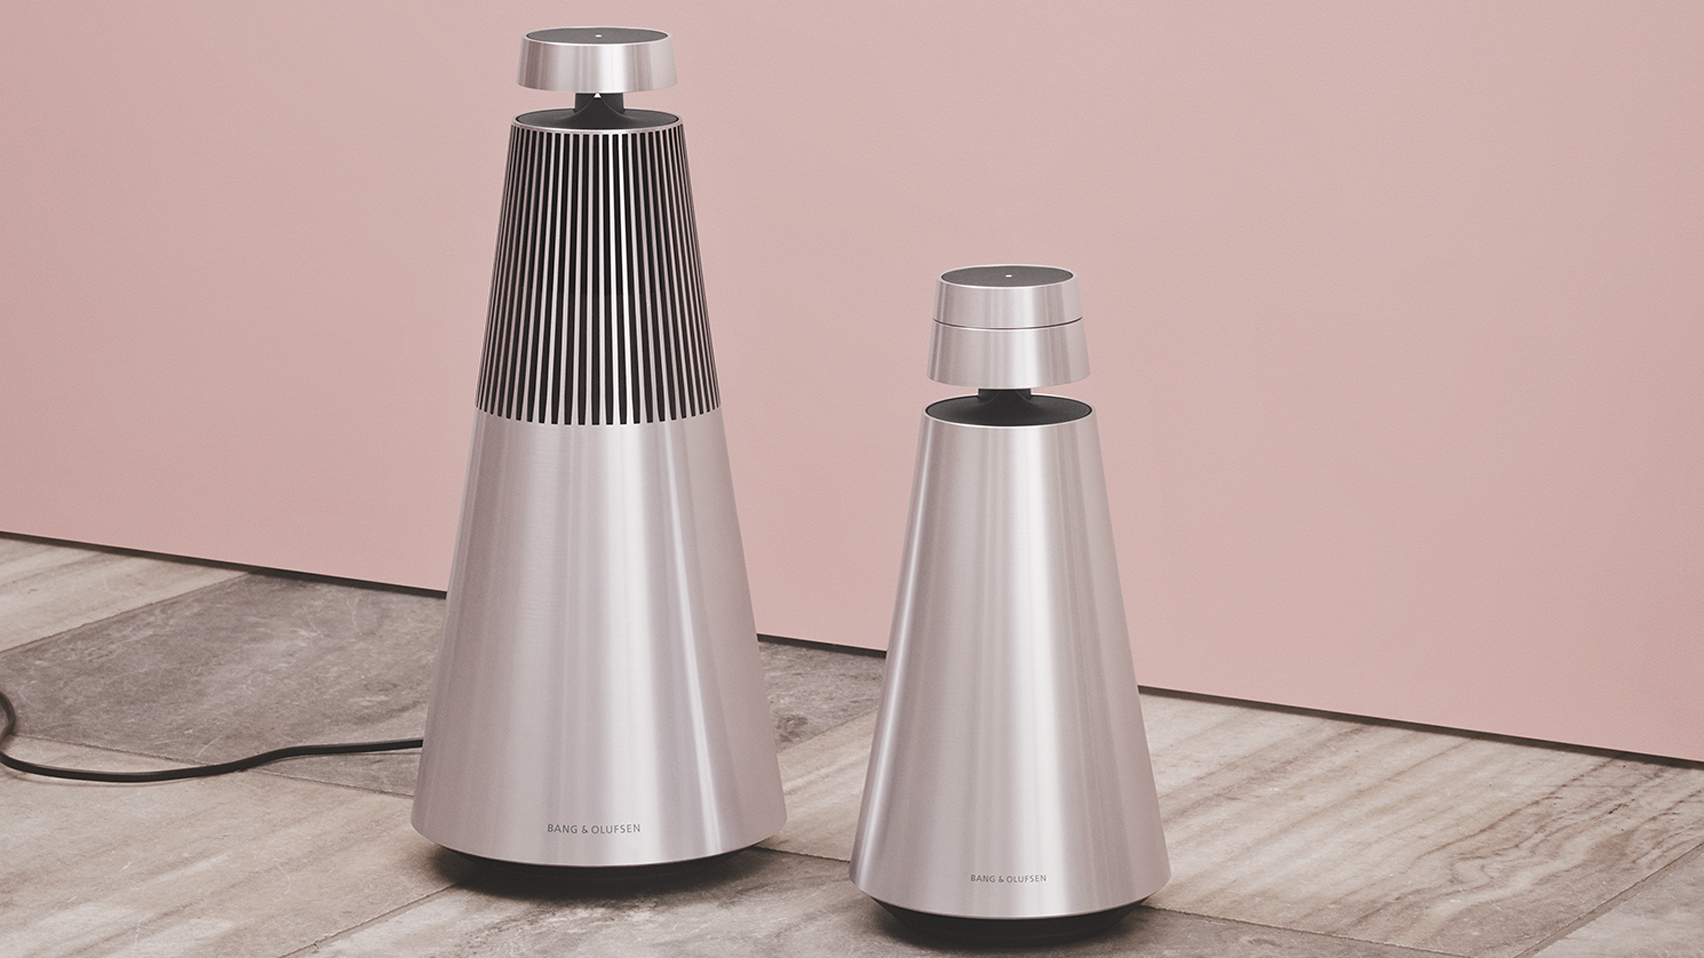 Electronics by Bang & Olufsen